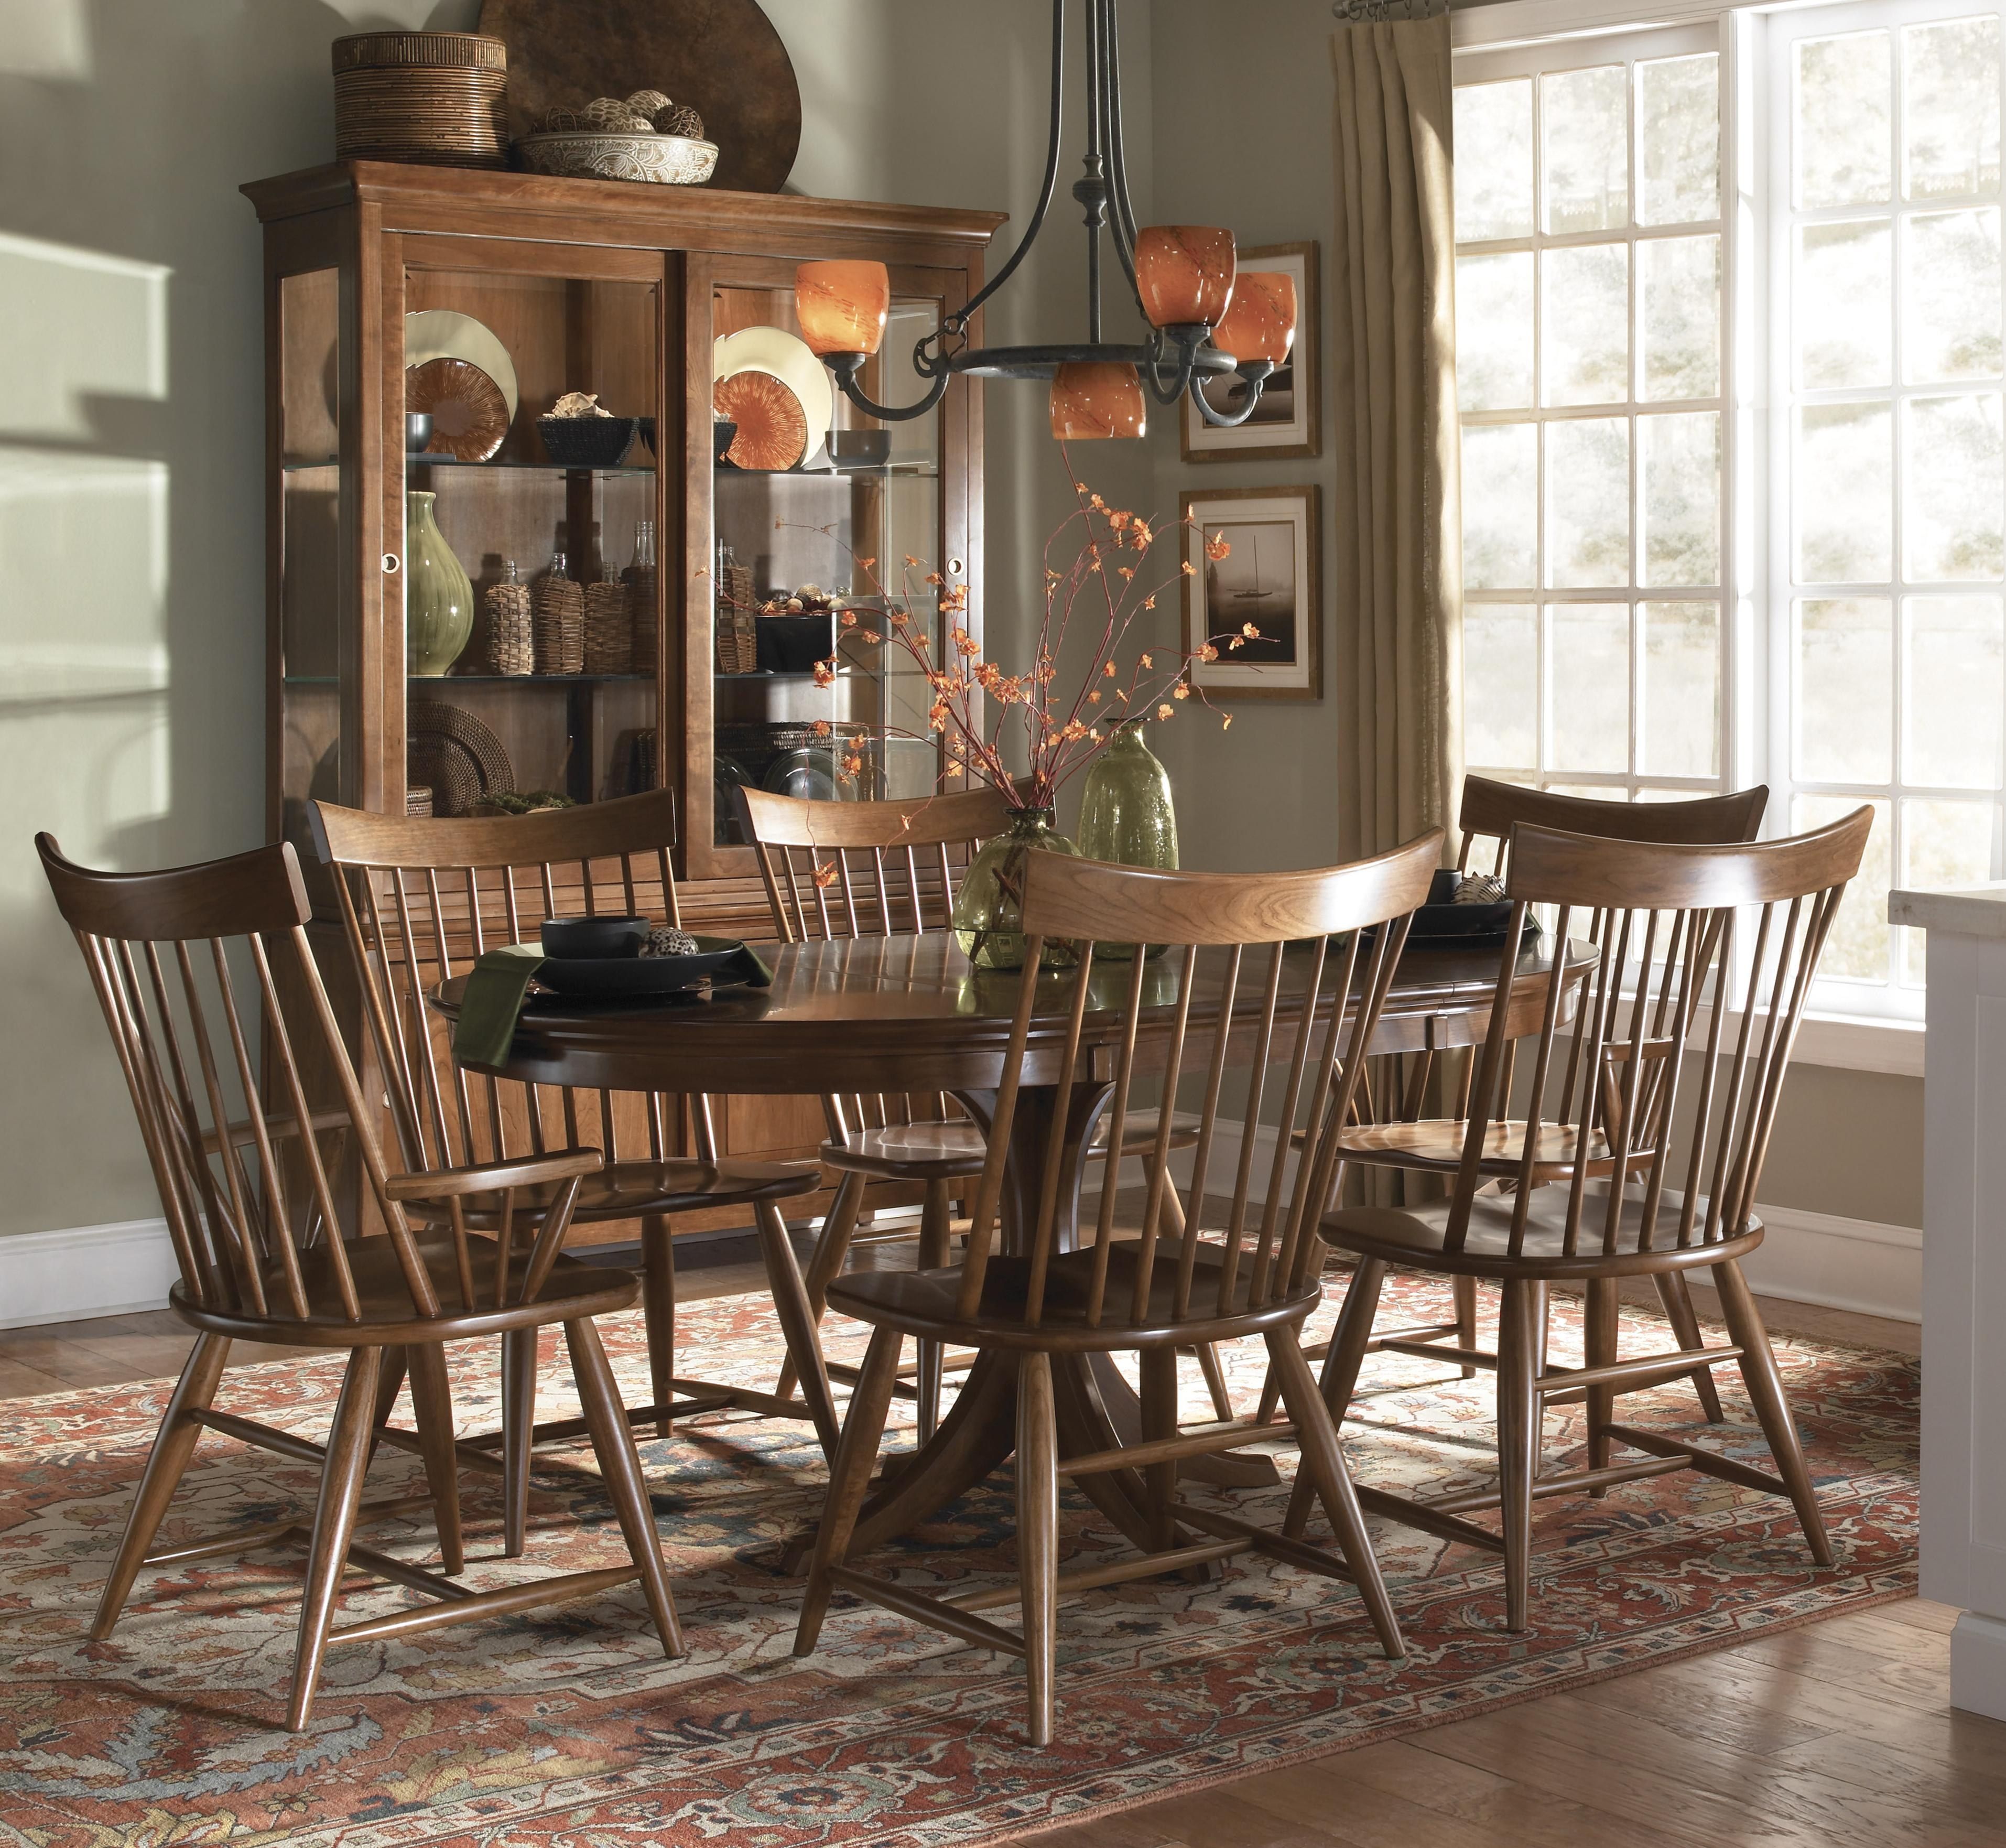 Kincaid Furniture Cherry Park Seven Piece Round Dining Table \u0026 Windsor Chair Set - AHFA - Dining 7 (or more) Piece Set Dealer Locator & Kincaid Furniture Cherry Park Seven Piece Round Dining Table ...